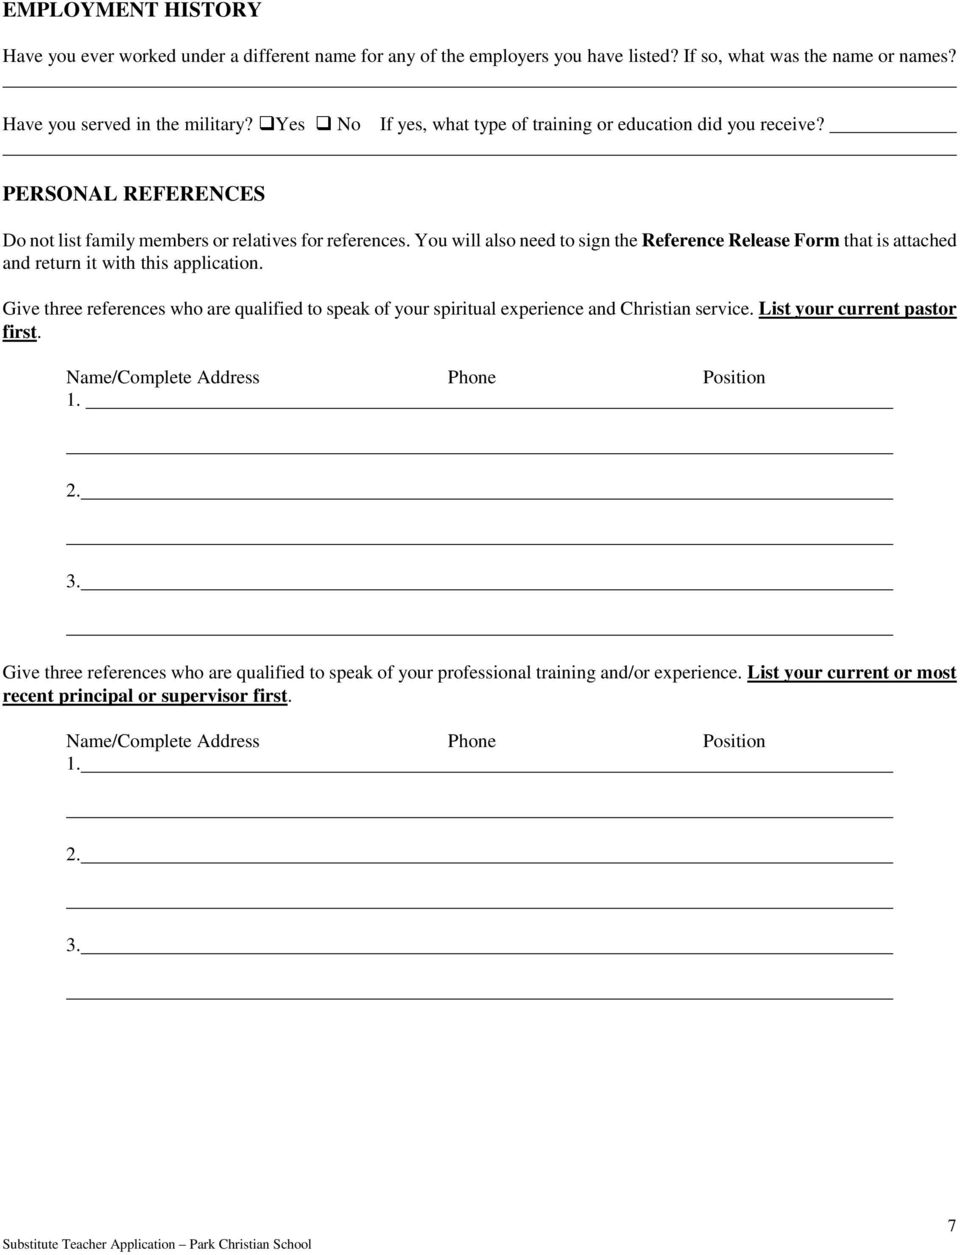 You will also need to sign the Reference Release Form that is attached and return it with this application.